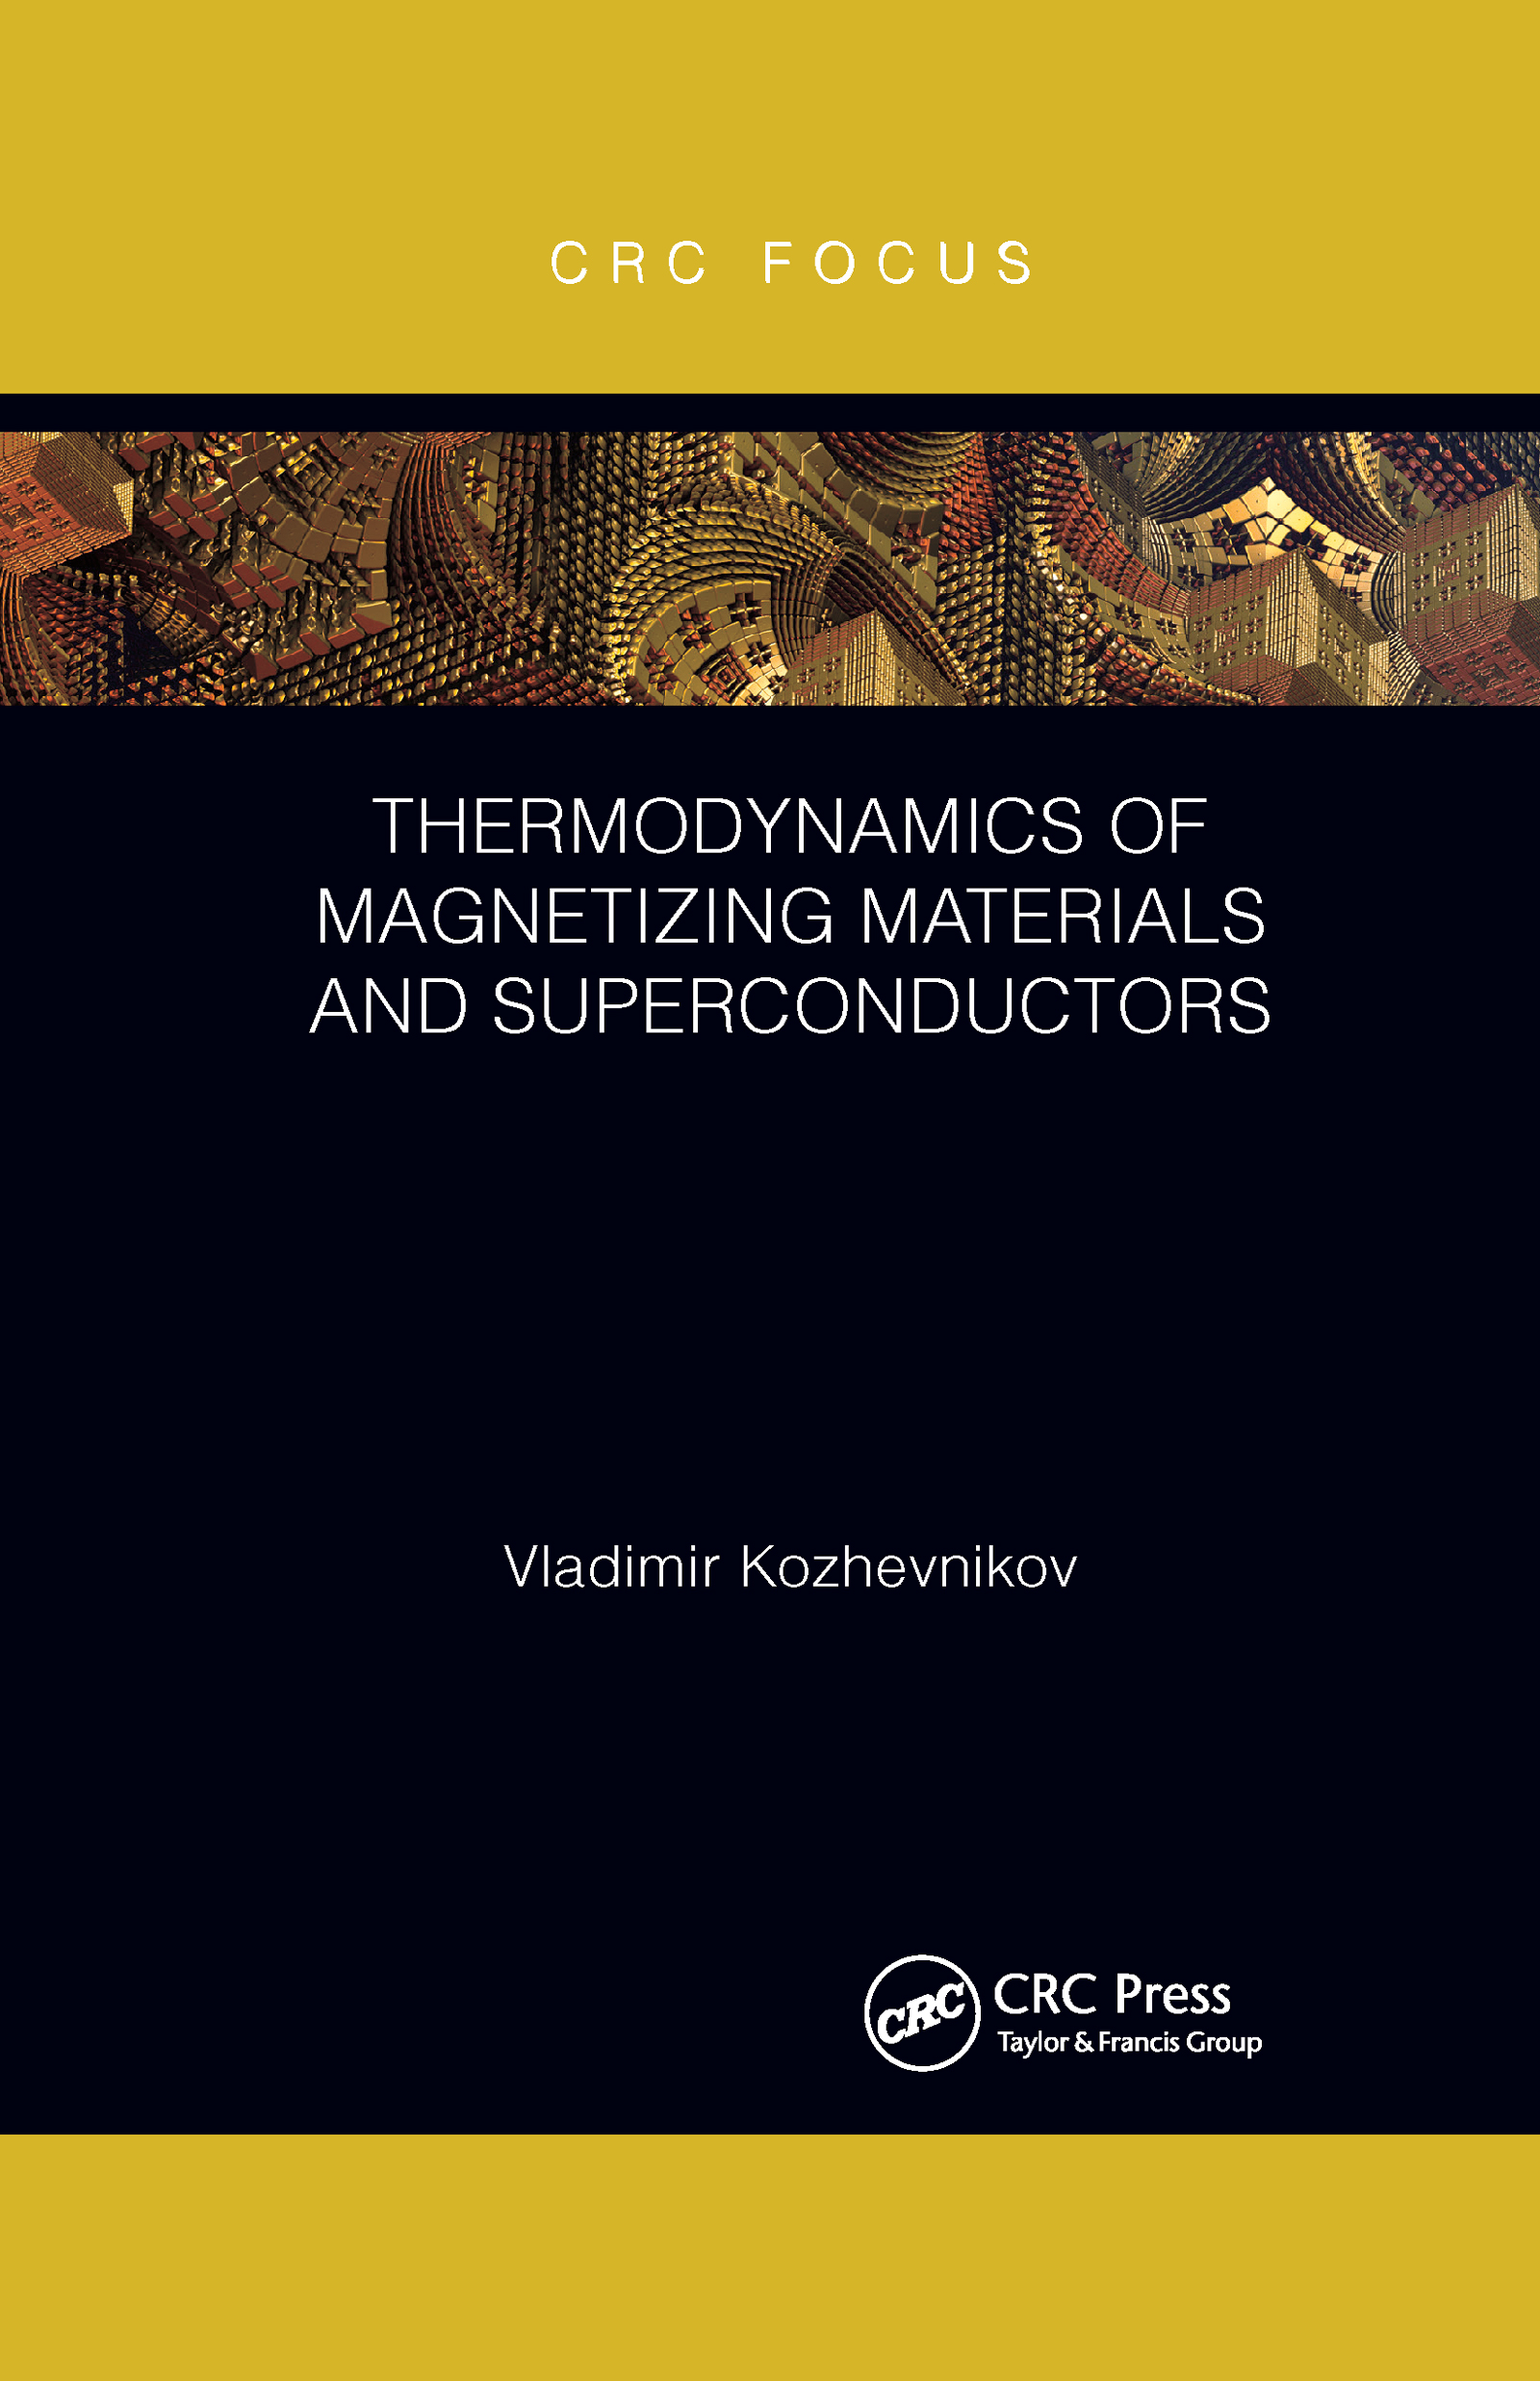 Thermodynamics of Magnetizing Materials and Superconductors